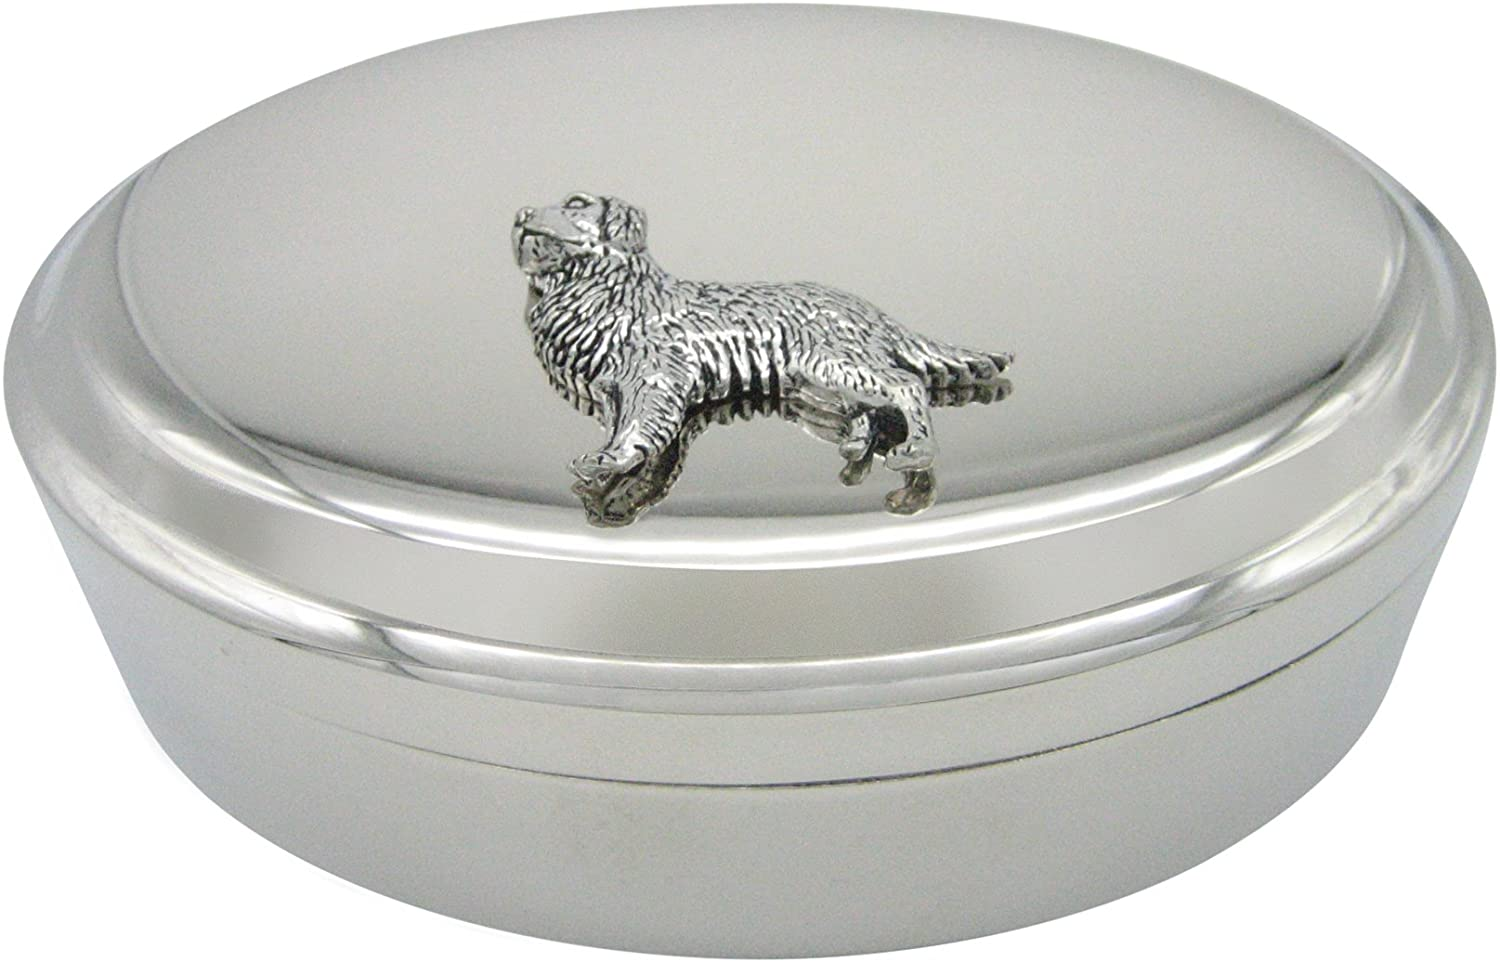 Golden Retriever Dog Pendant Oval Trinket Jewelry Box